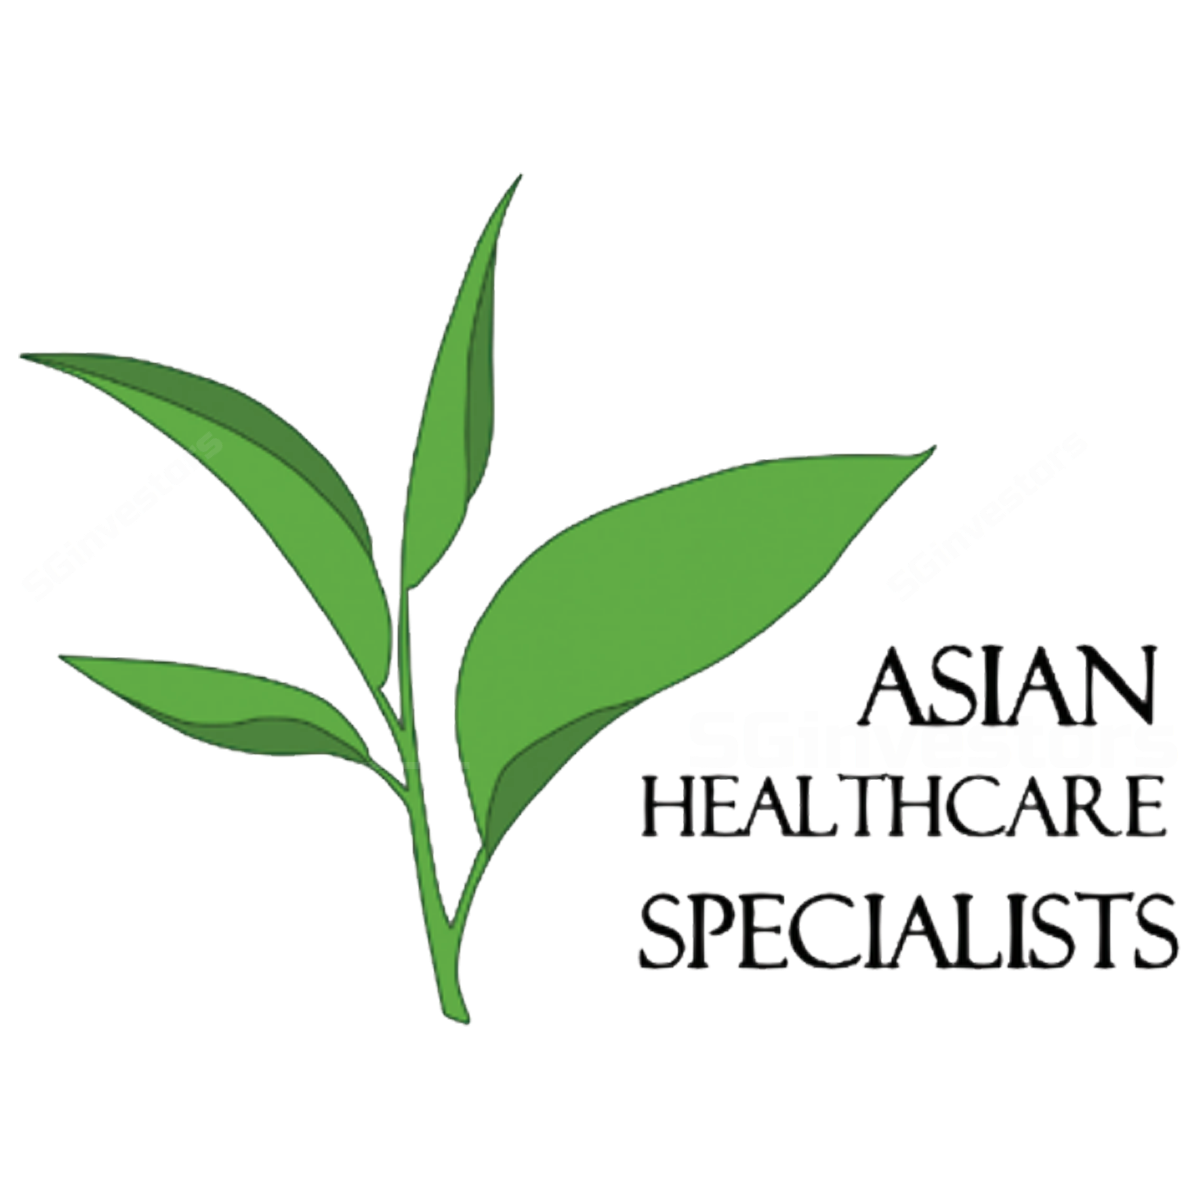 Asian Healthcare Specialists Limited - NRA Capital Research 2018-06-18: Highly Profitable Business With Aggressive Growth Plans